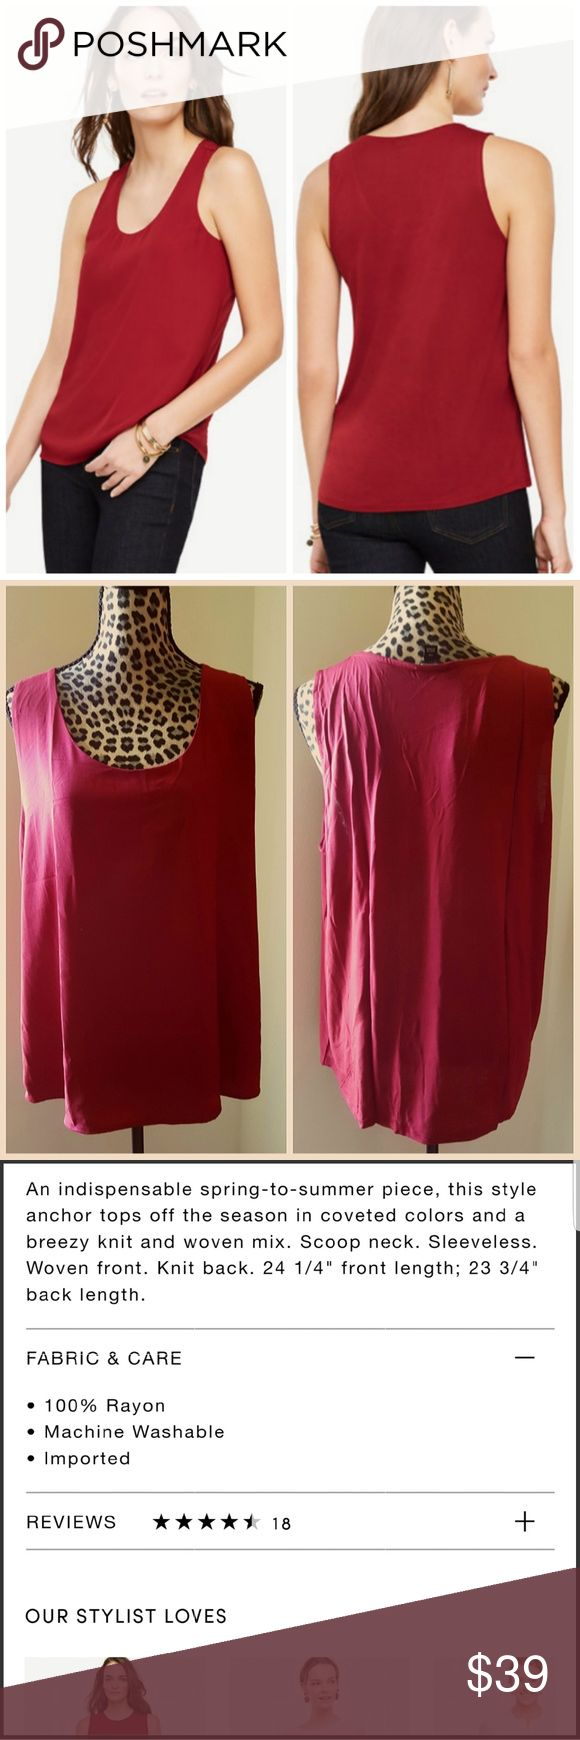 NEW Ann Taylor Mixed Media Shell Brand new with tags  Ann Taylor Rumba Red Mixed Media Shell  Rumba red is an online exclusive color that is sold out for all sizes except petite on ann taylor online. Plus size  20% off bundles or Make me an offer I'm never offended by any offer.  No trades Ann Taylor Tops Tank Tops